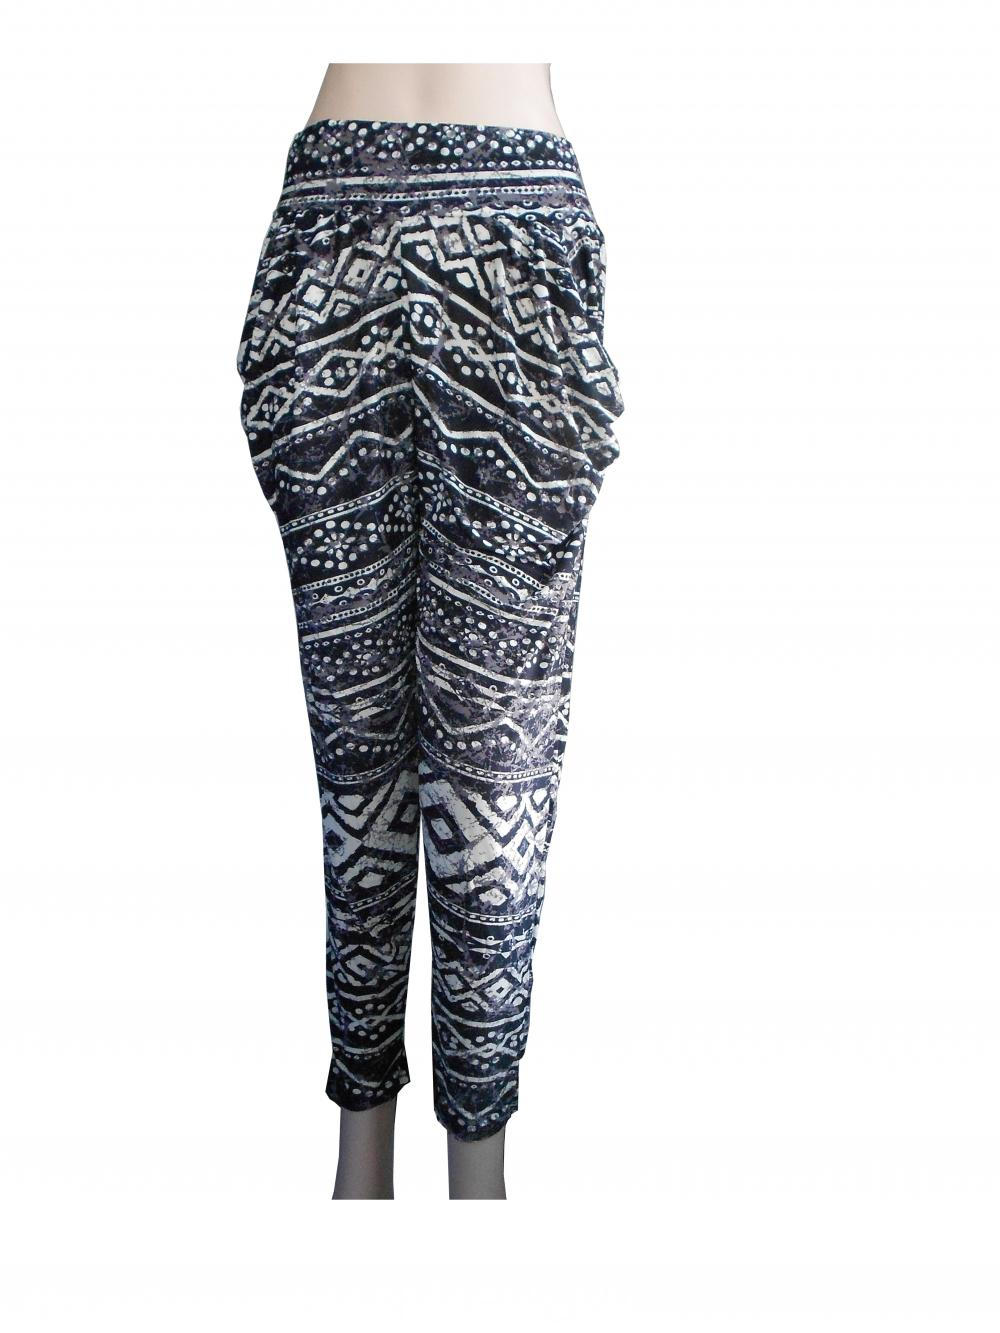 95% Polyester 5% Spandex Lady's Leggings